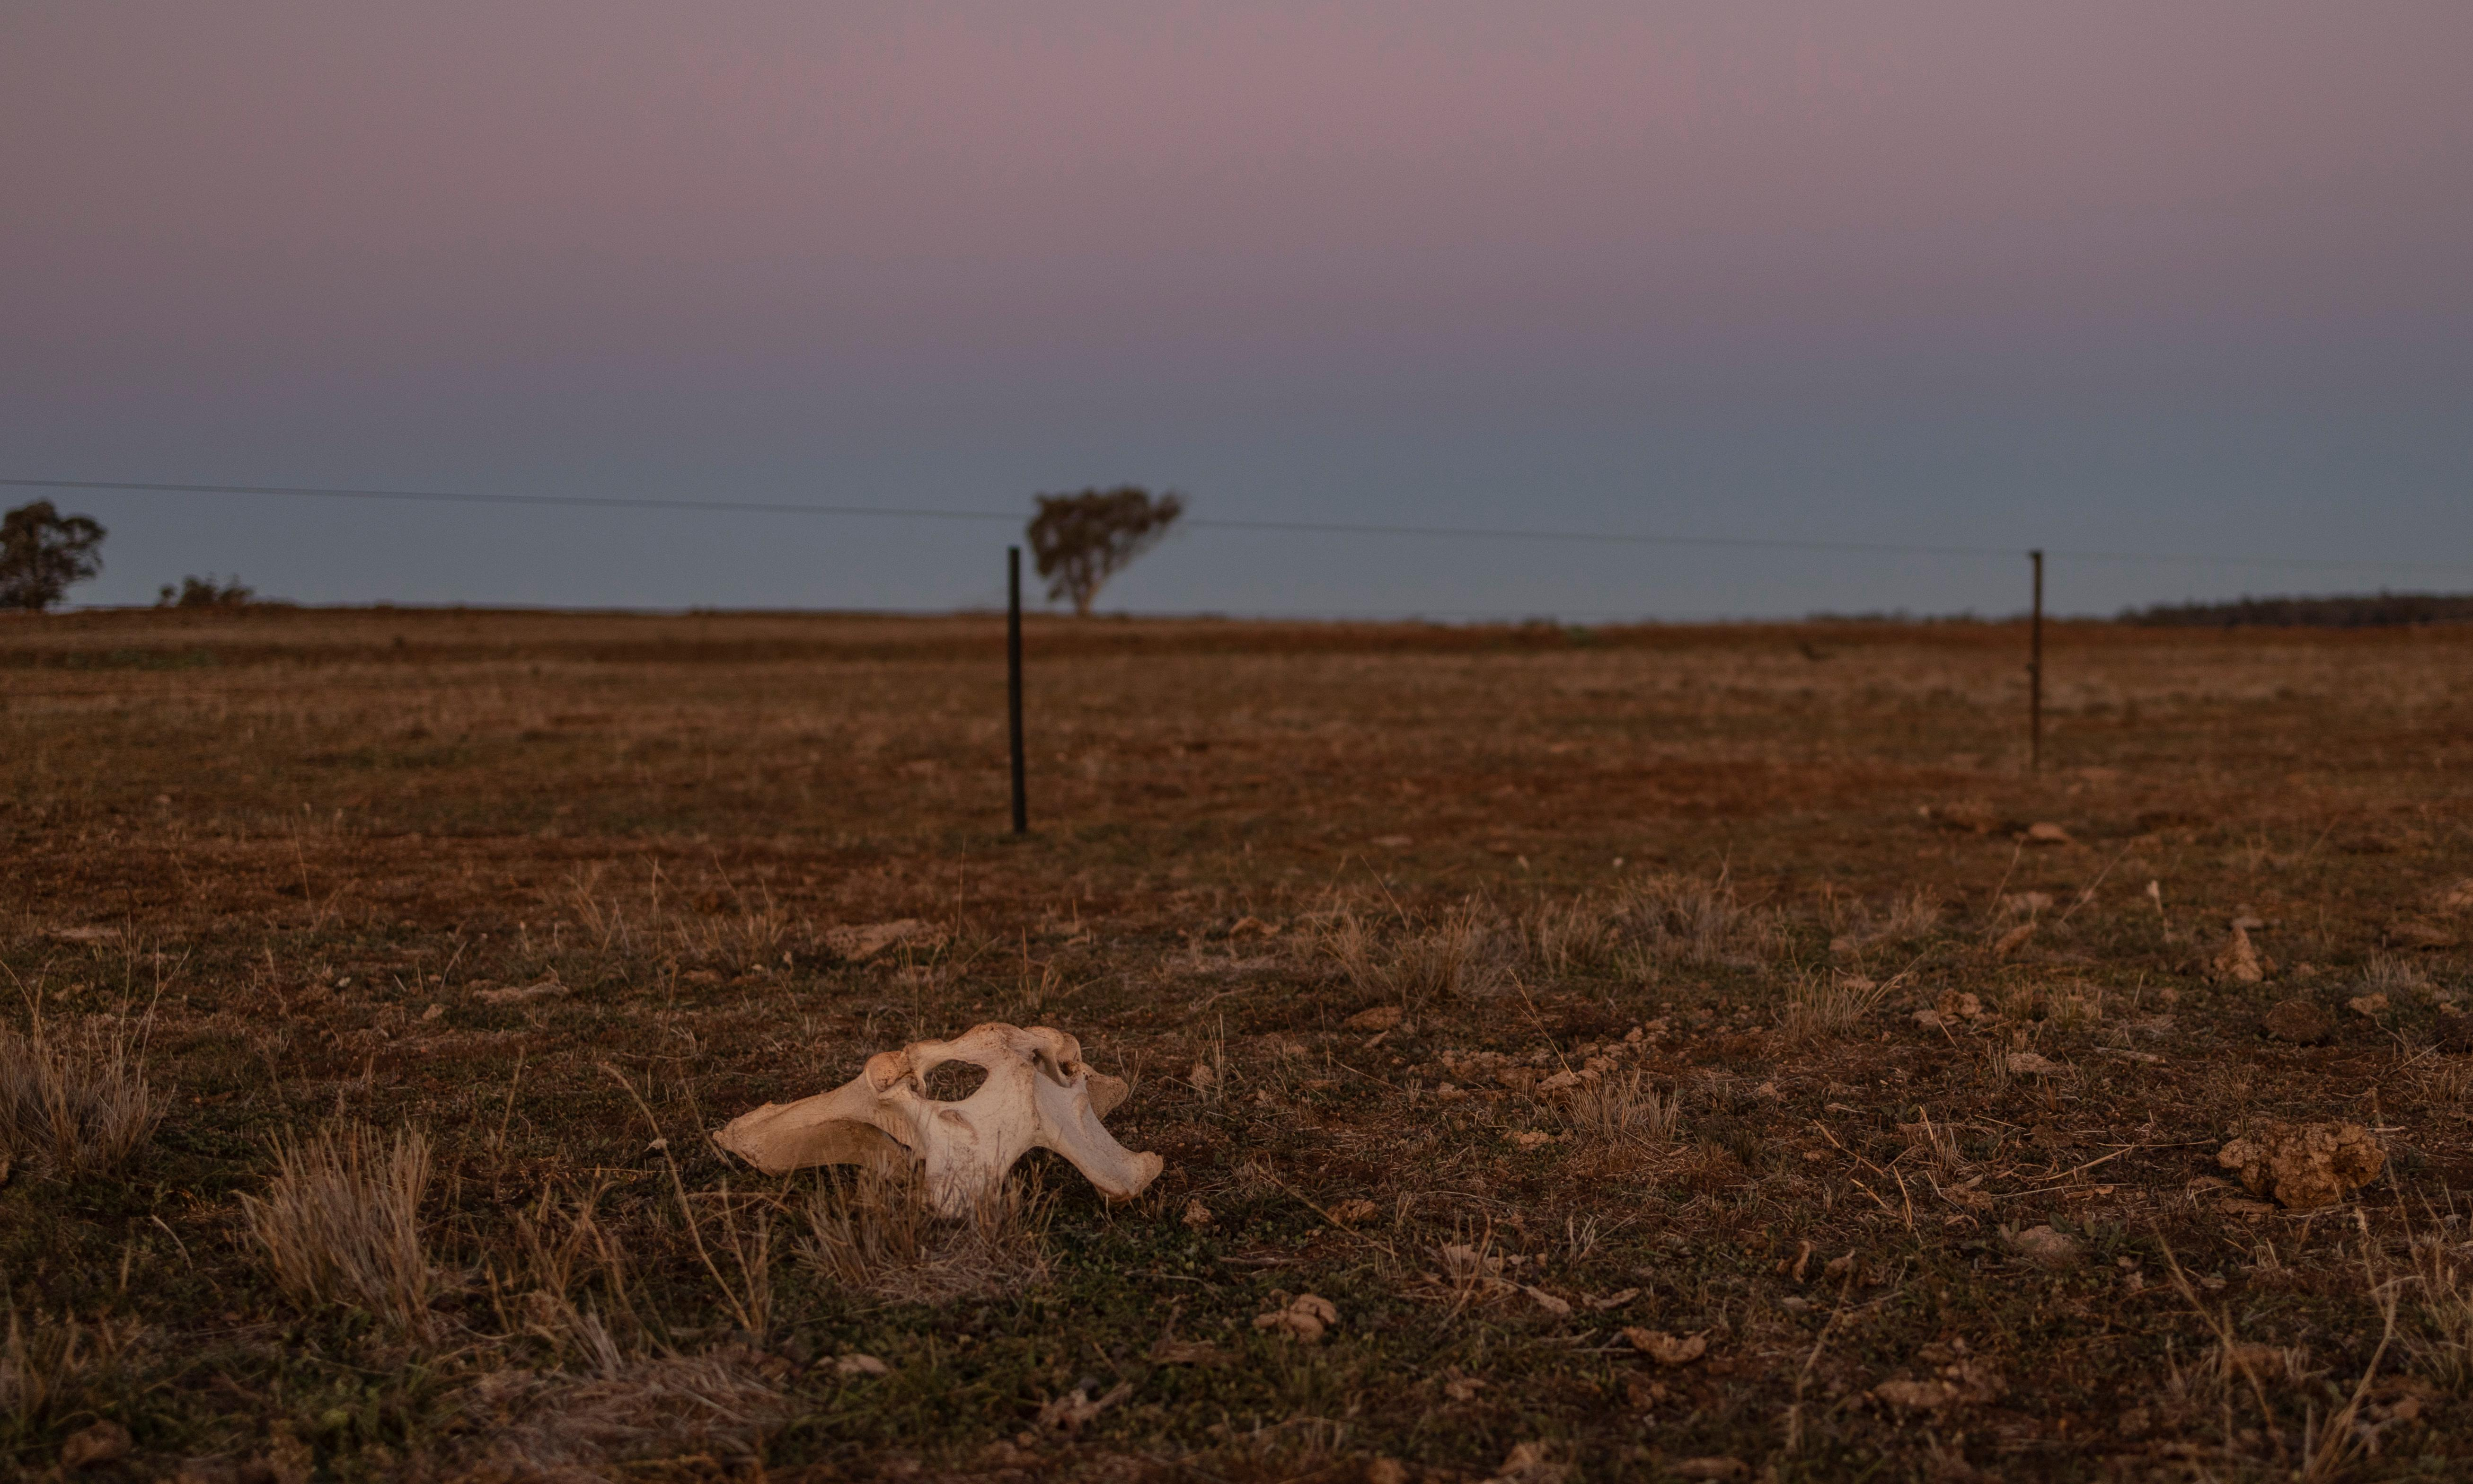 Australians increasingly fear climate change related drought and extinctions